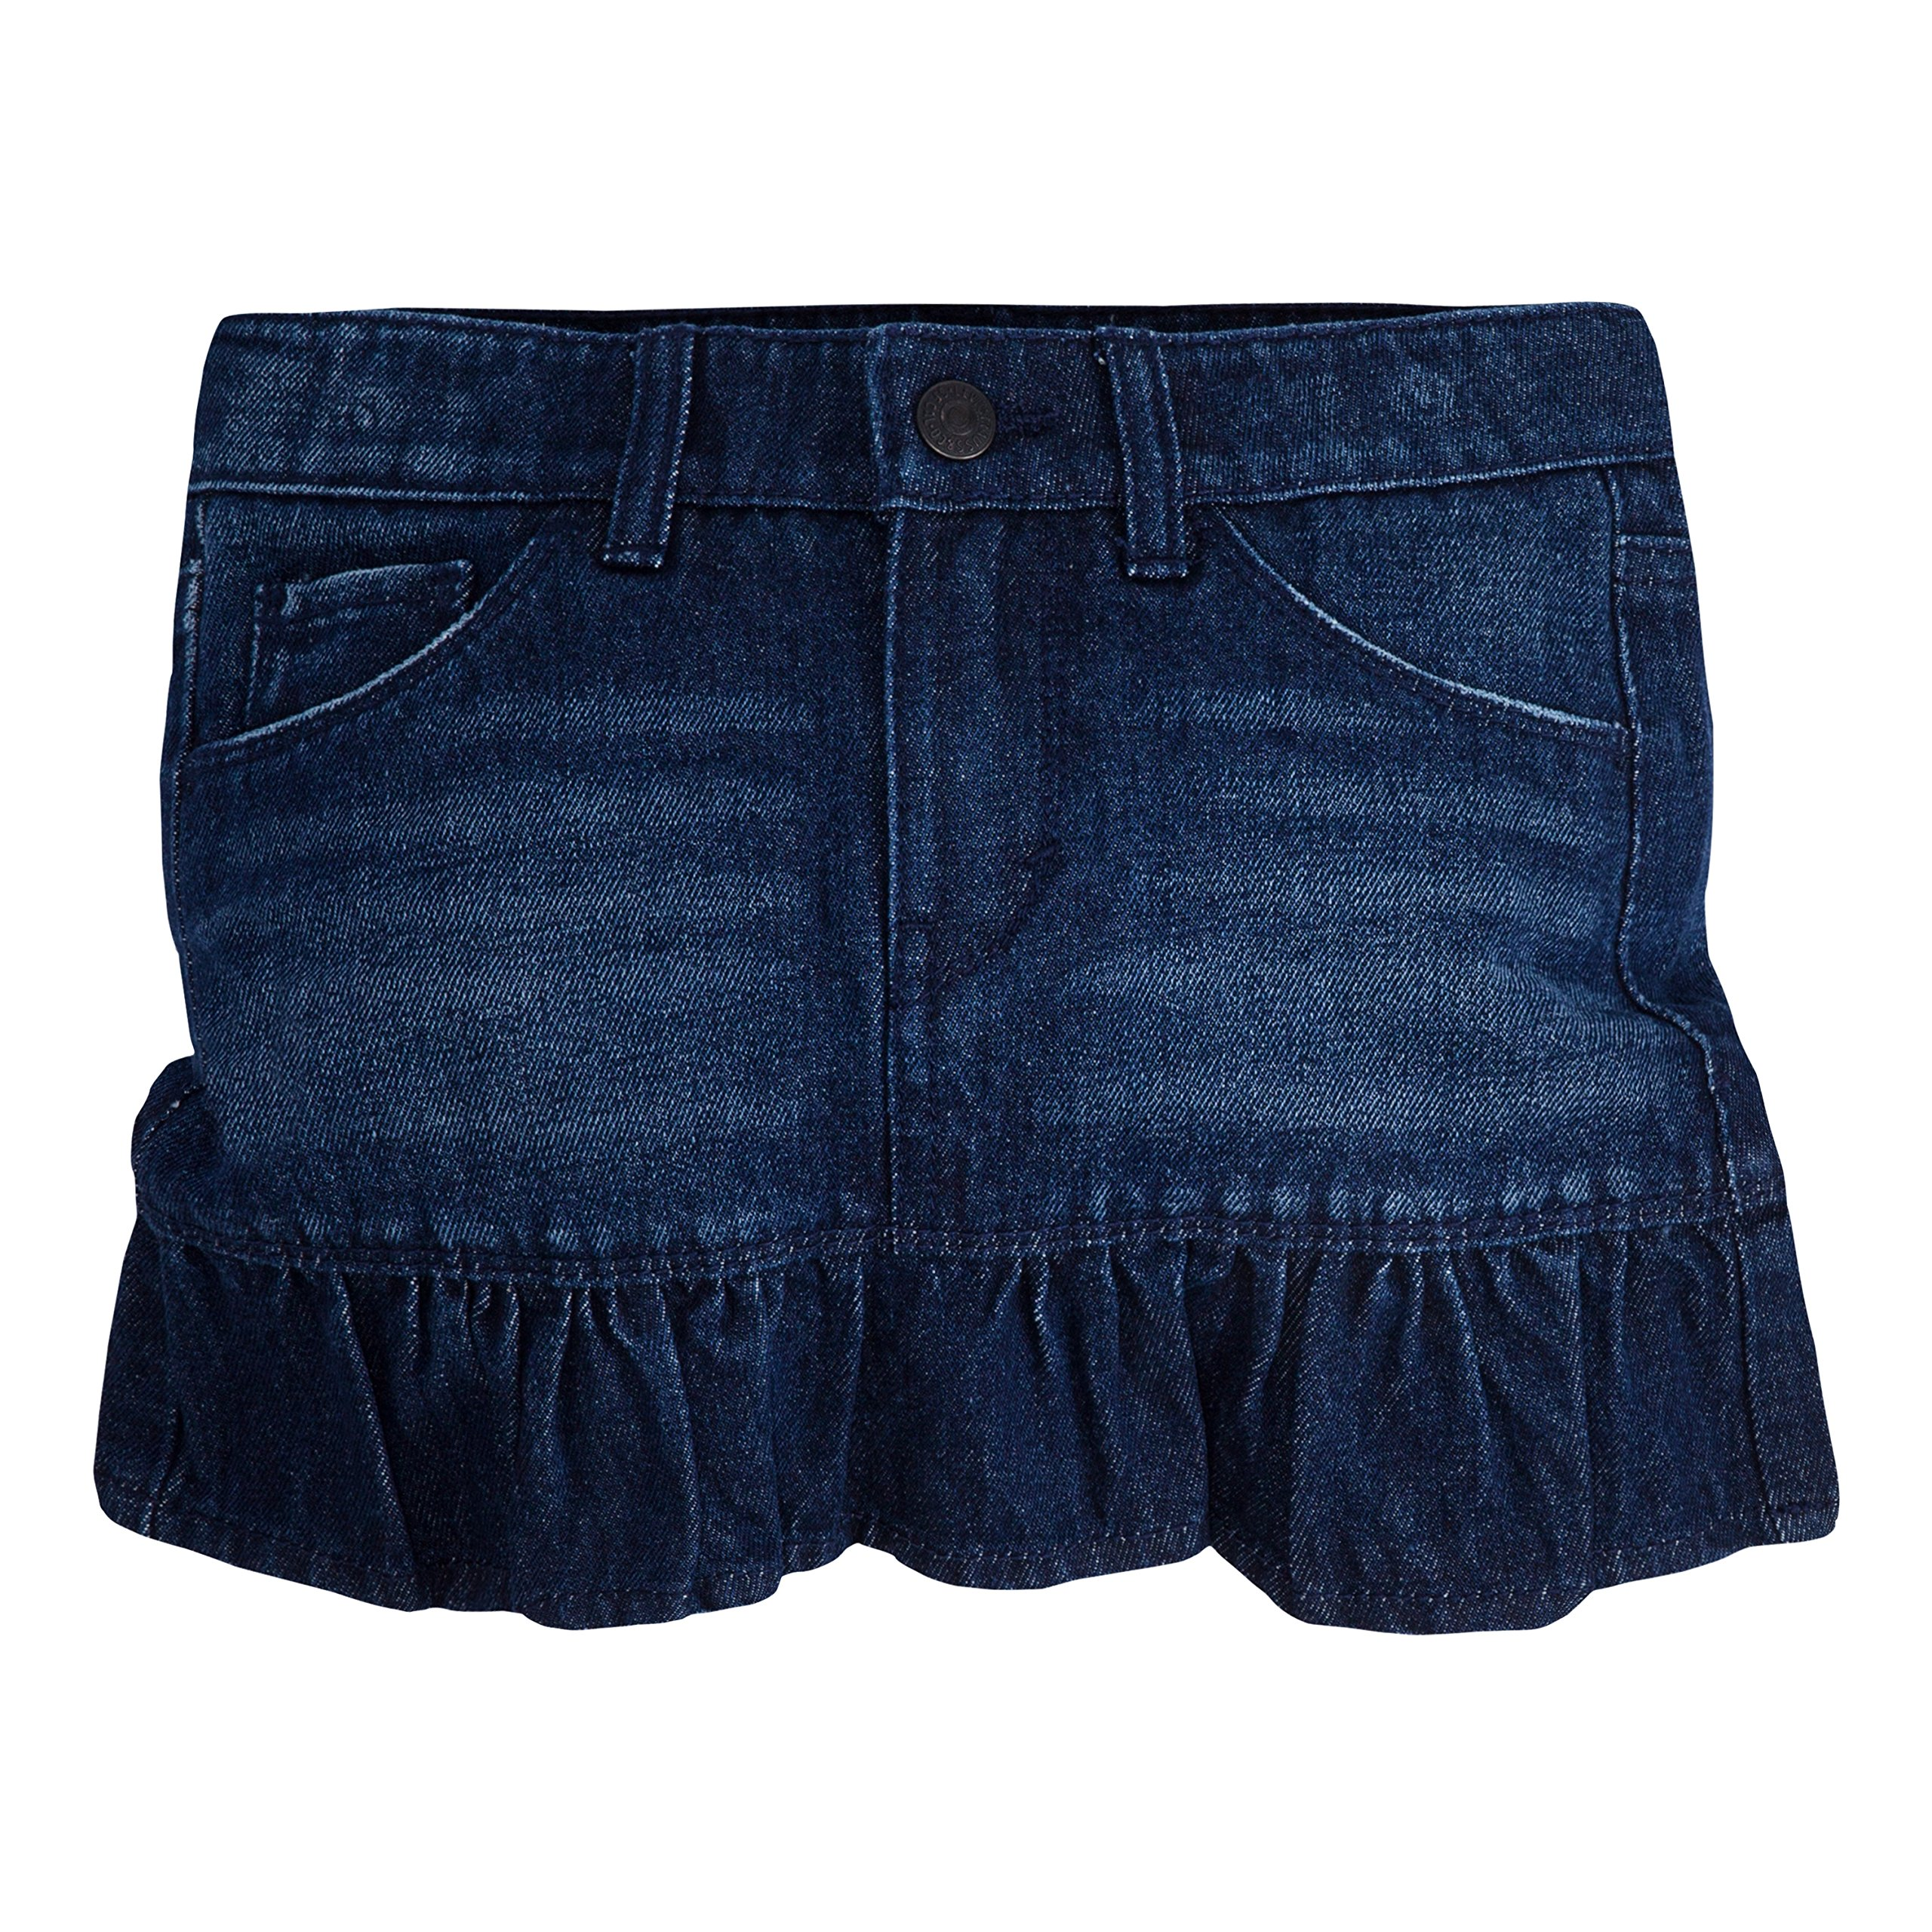 Levi's Girls' Little Alessandra Scooter Skirt, Night Fade, 6X